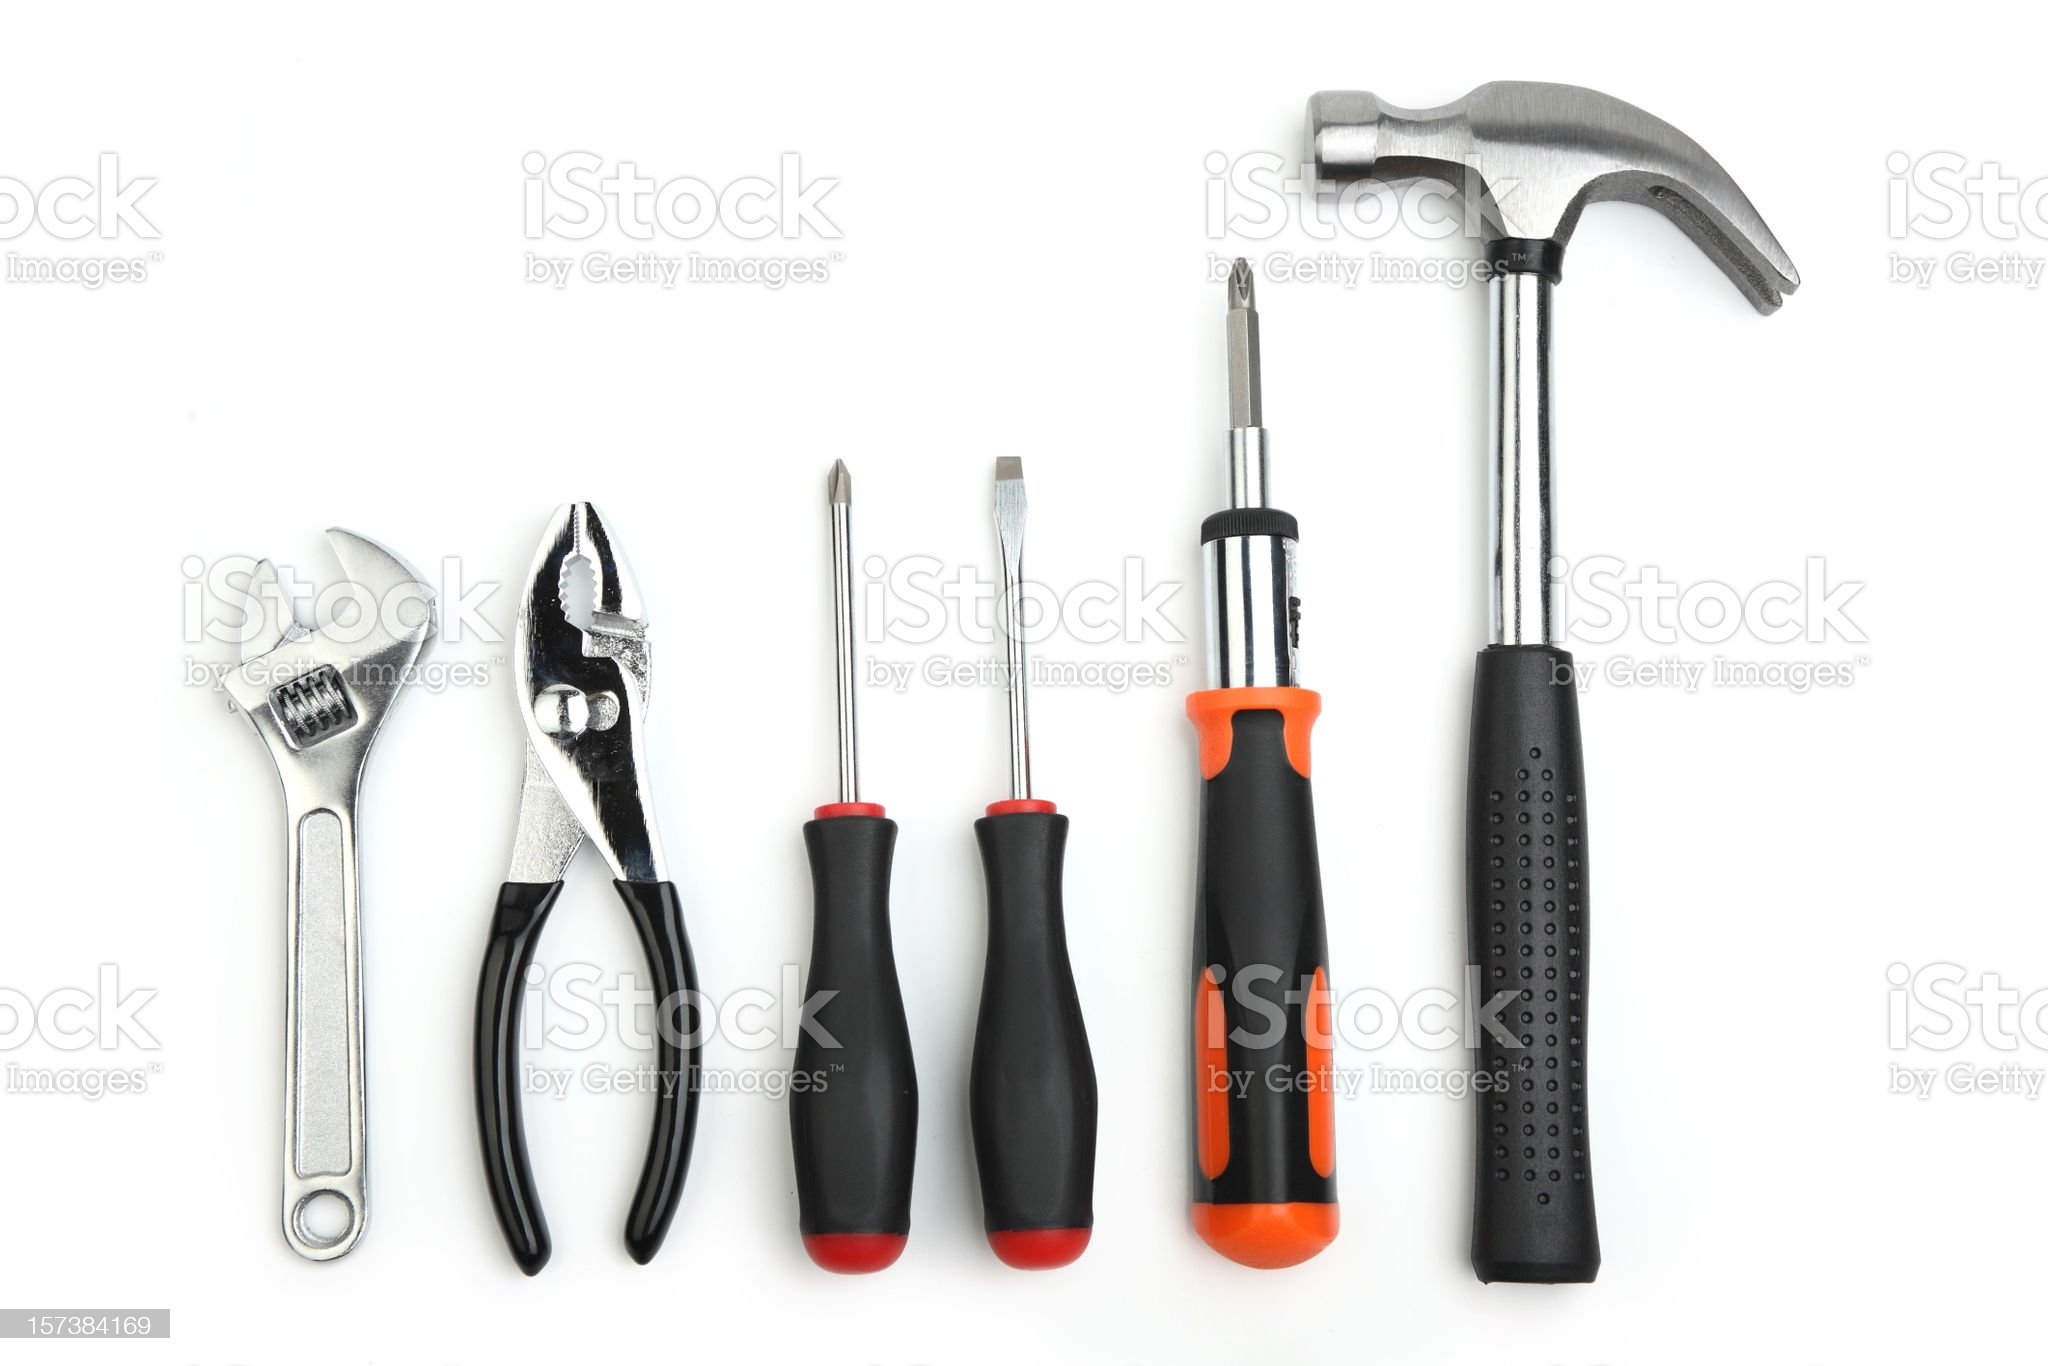 Various hand tools with a white background  royalty-free stock photo